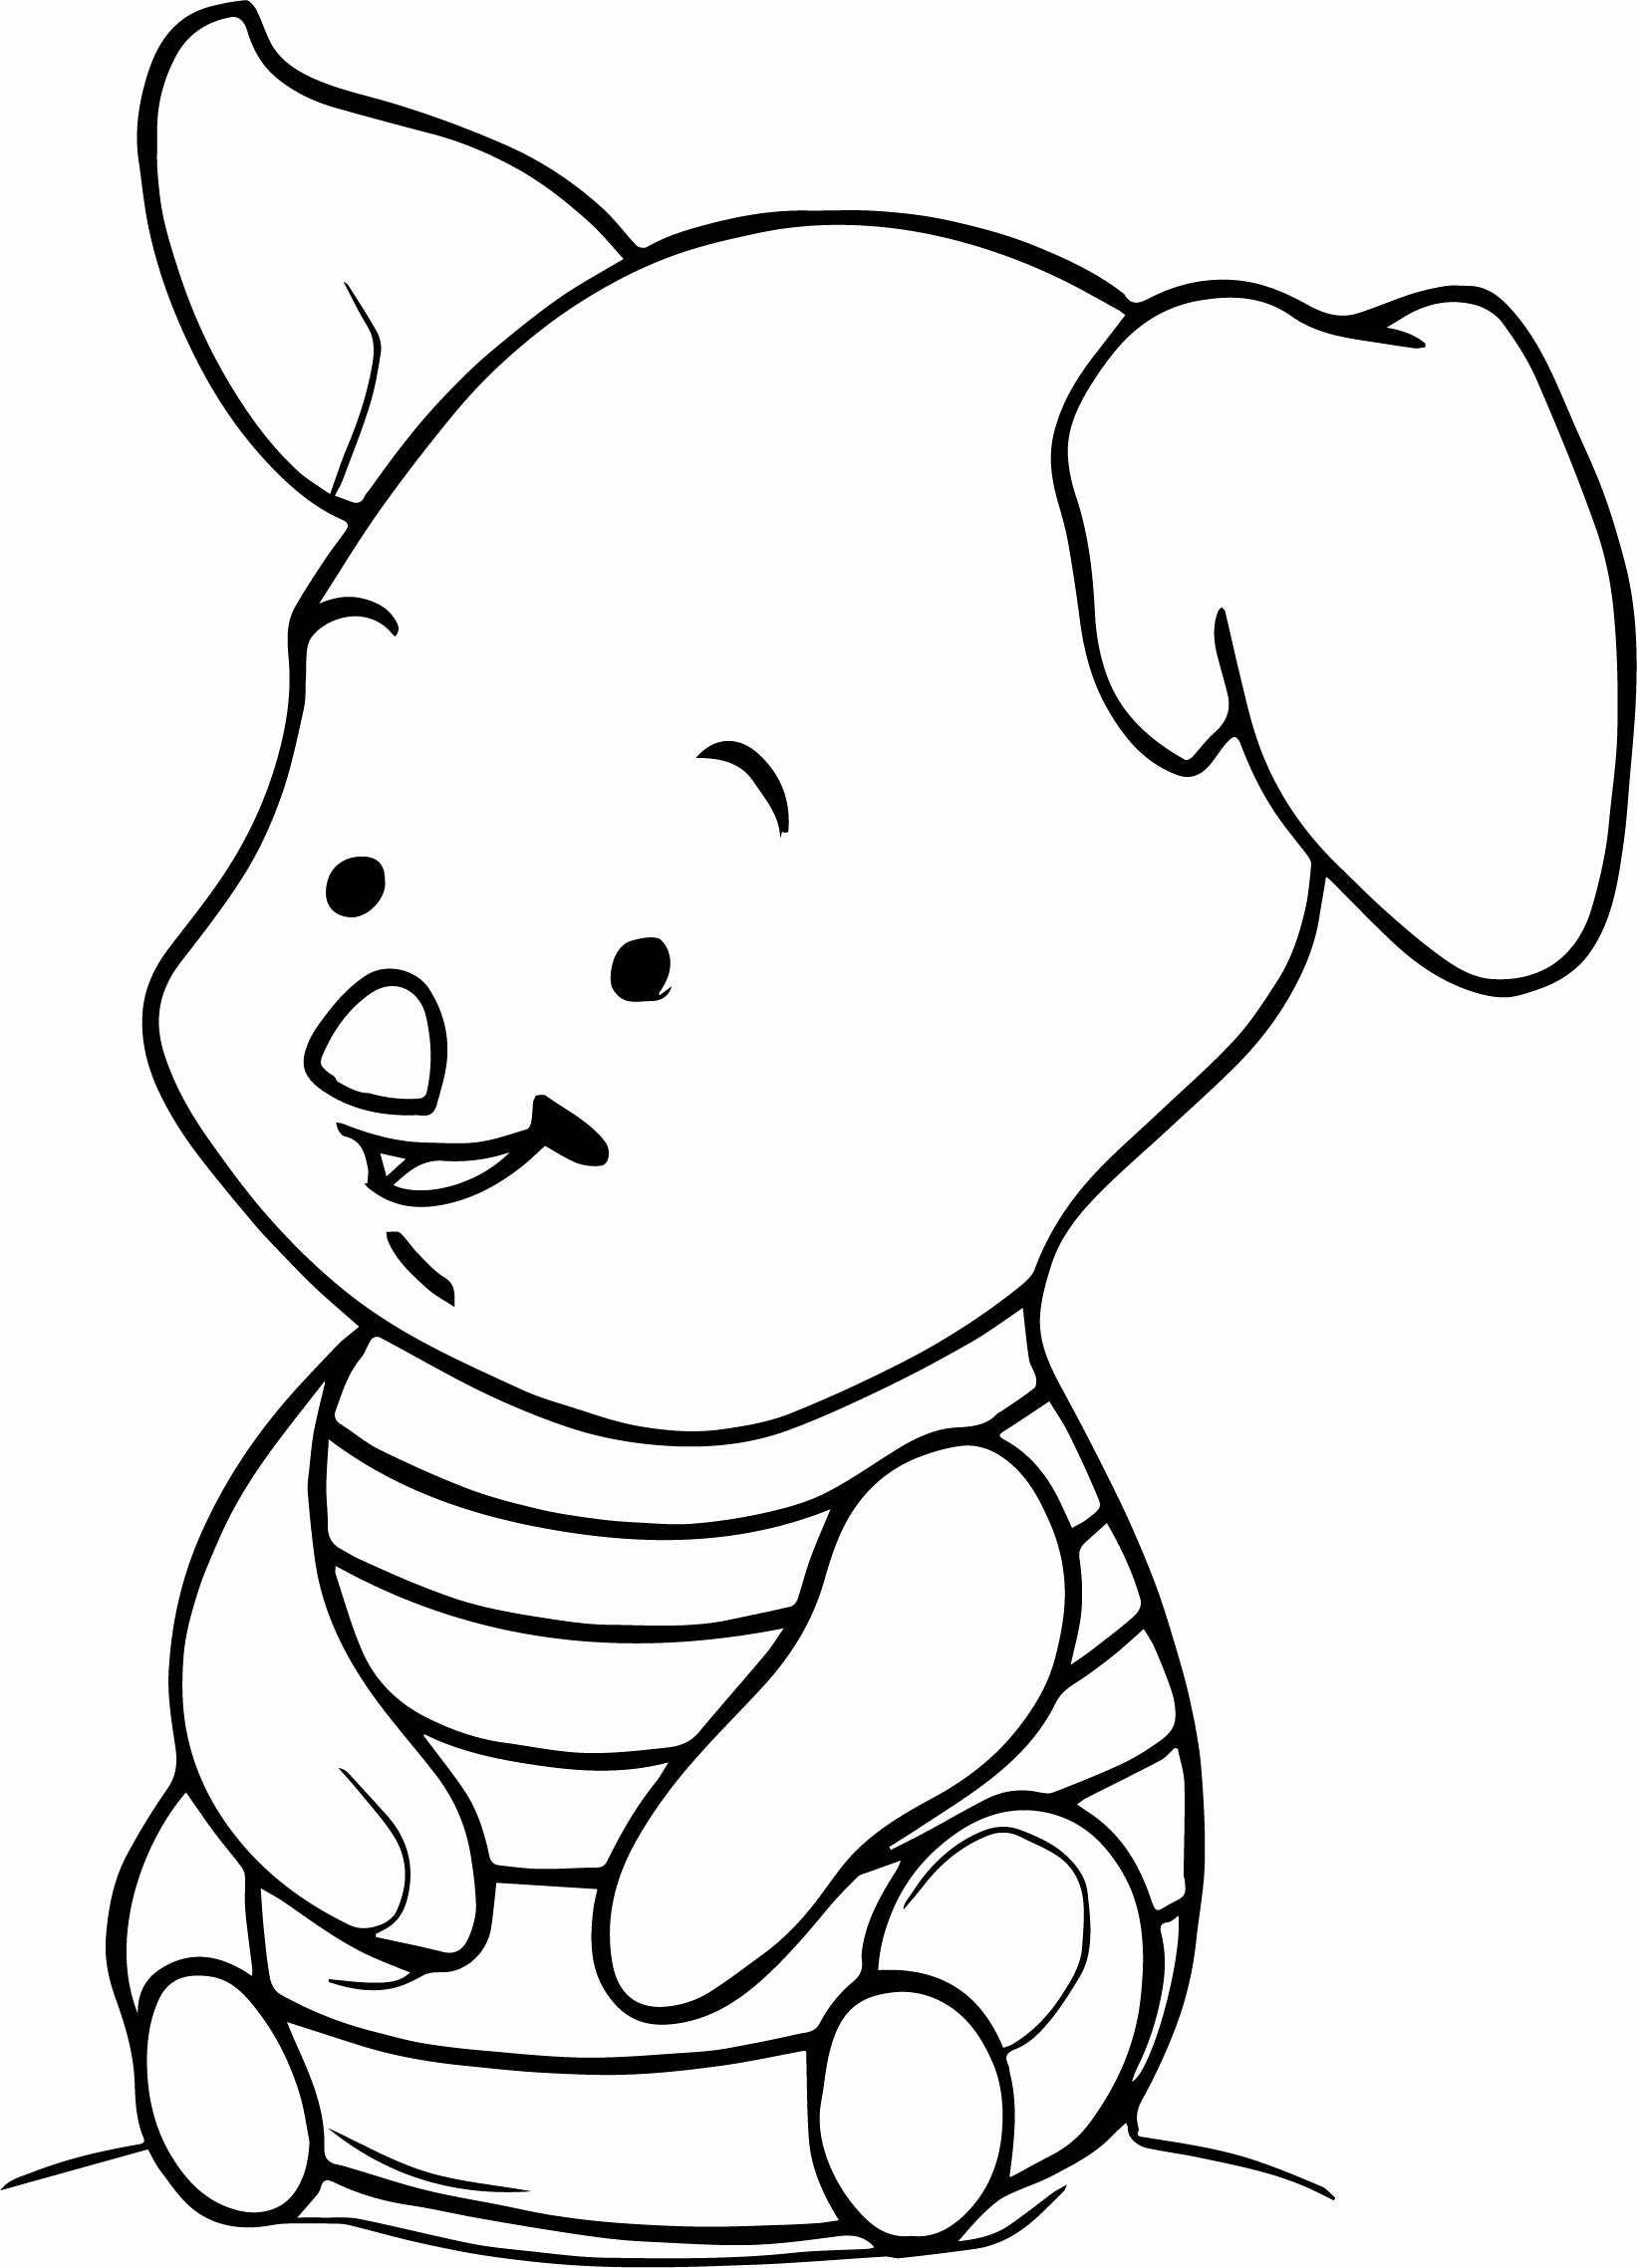 1643x2277 Piglet Coloring Pages Photos On Throughout Idea